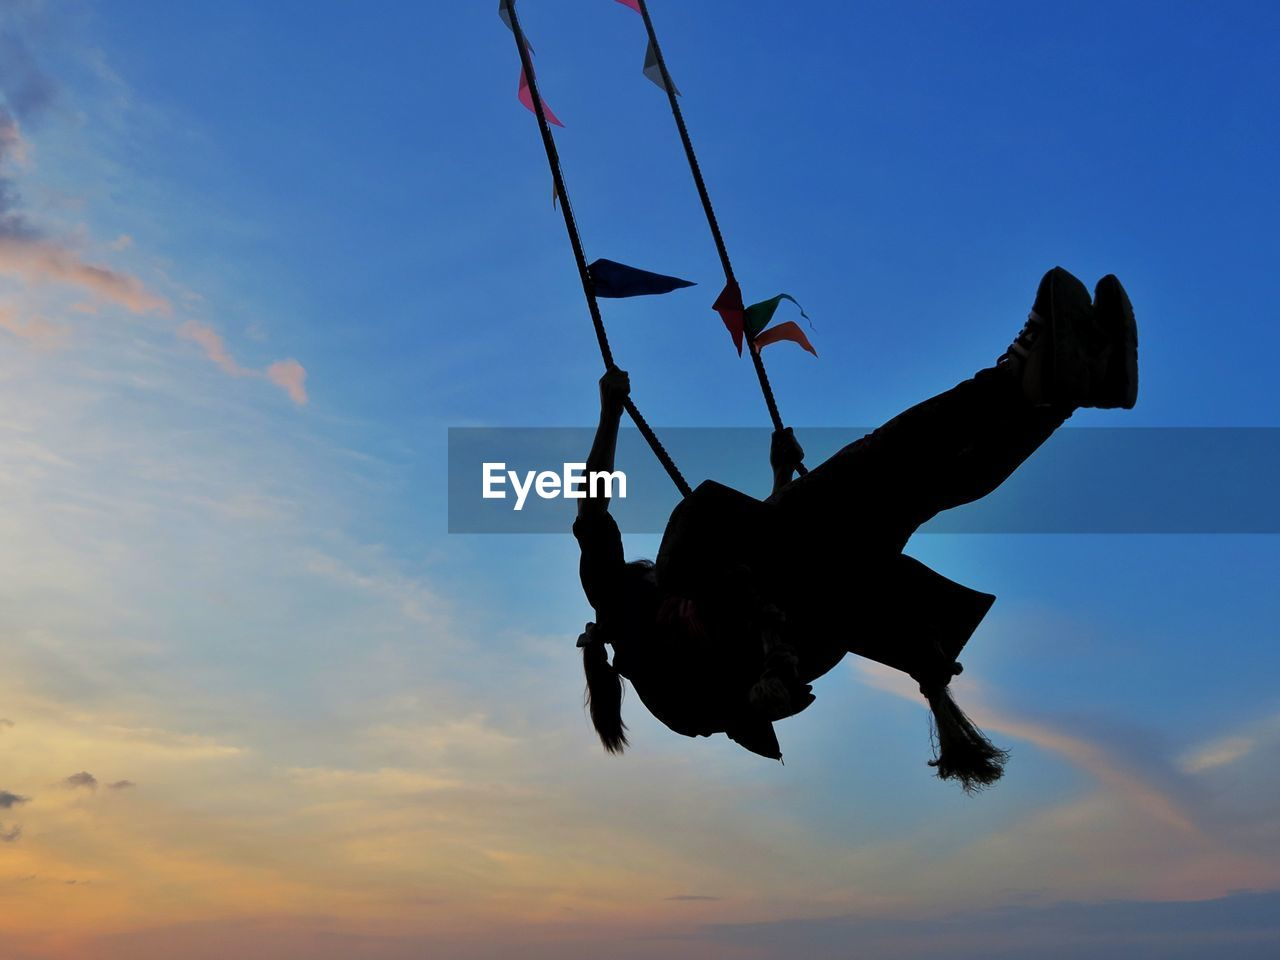 sky, sunset, low angle view, silhouette, no people, outdoors, flying, mid-air, air vehicle, day